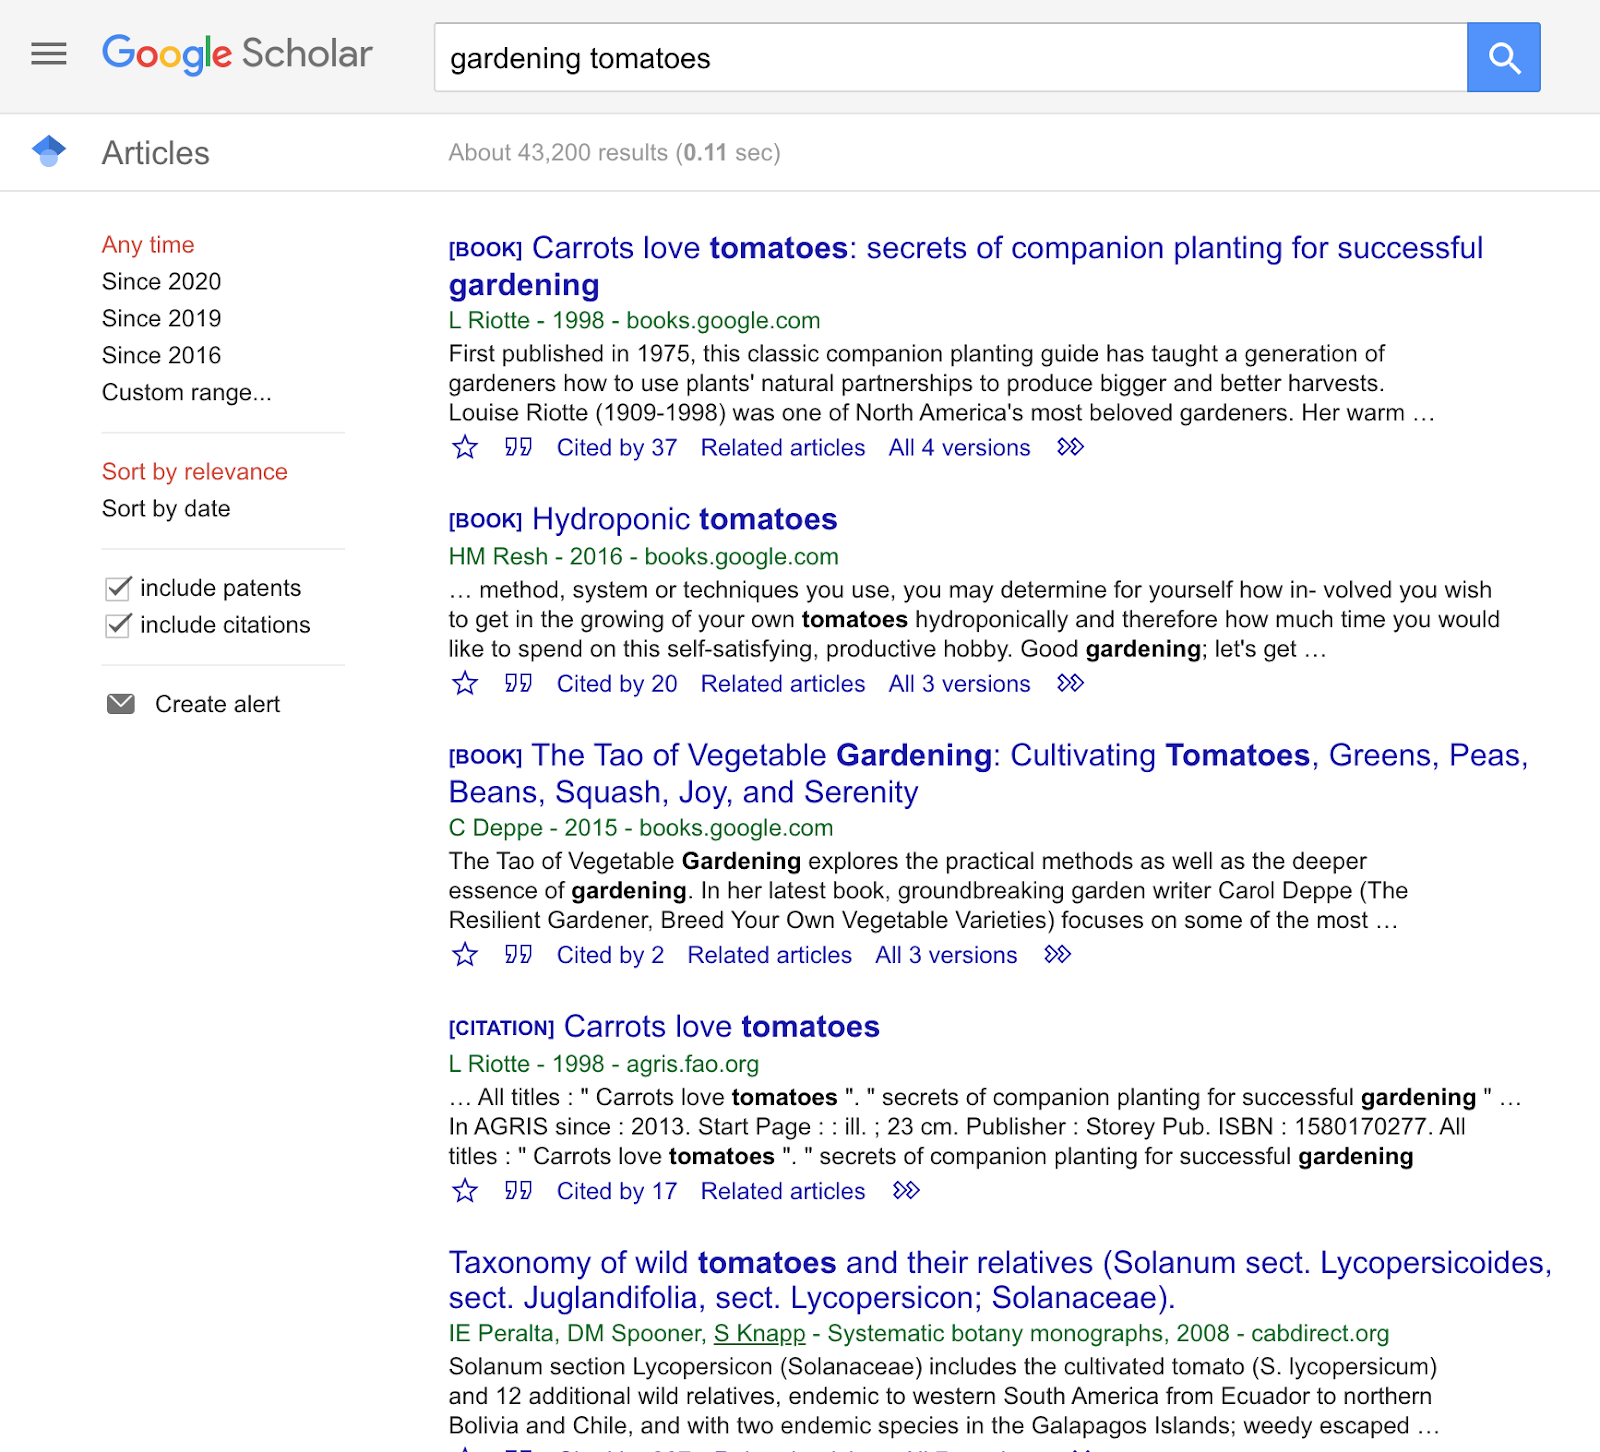 Google Scholar is a free search engine tool